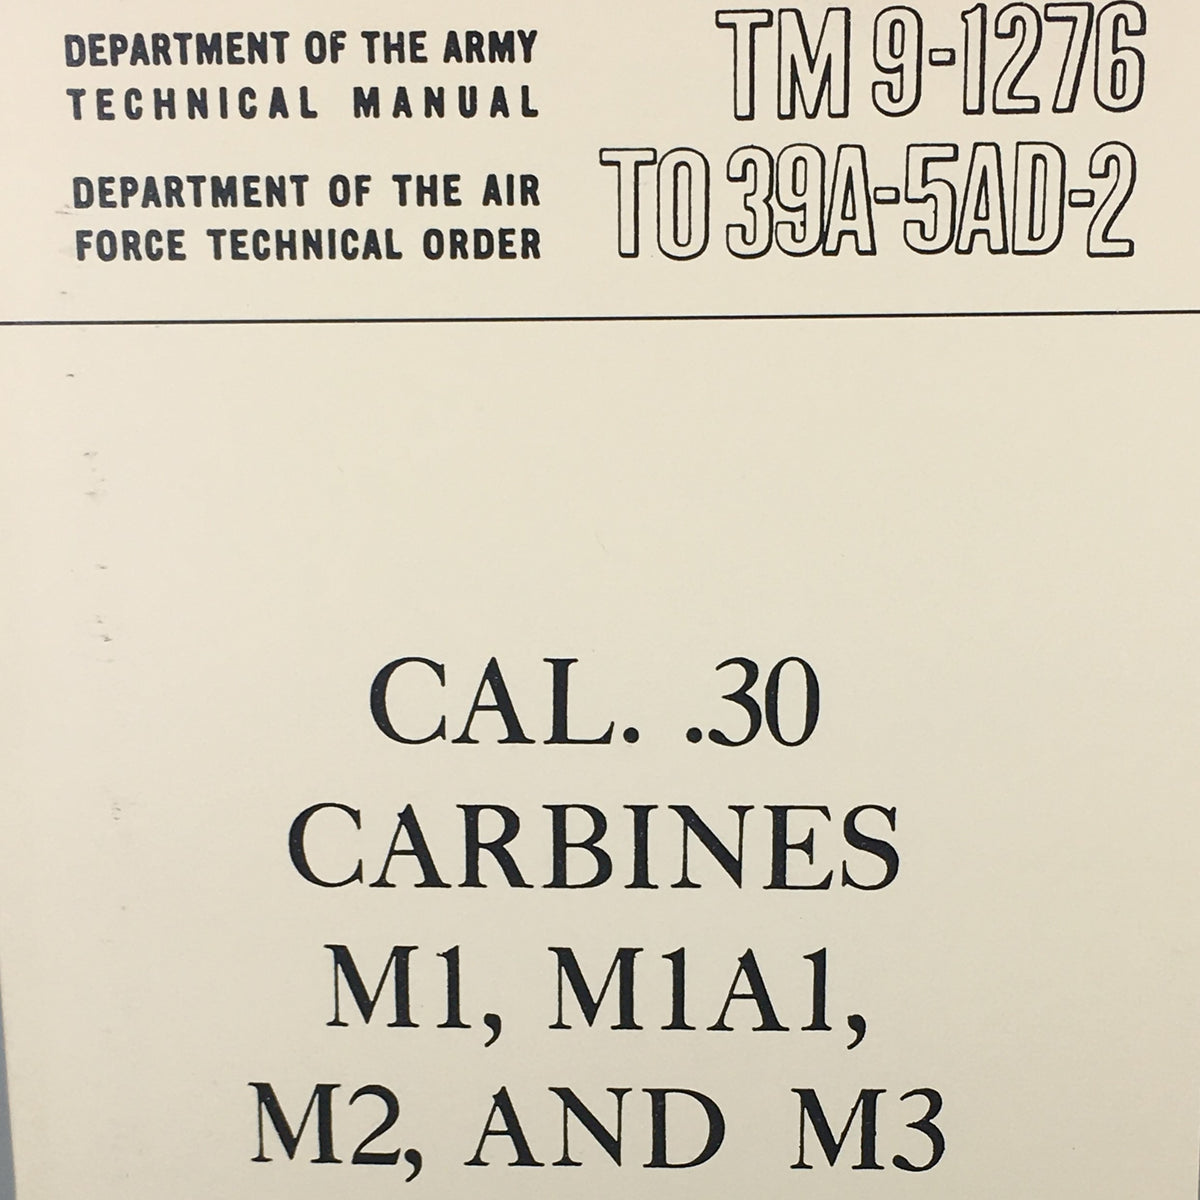 M.16A2 Training Manual - Department of the Army Technical Manual